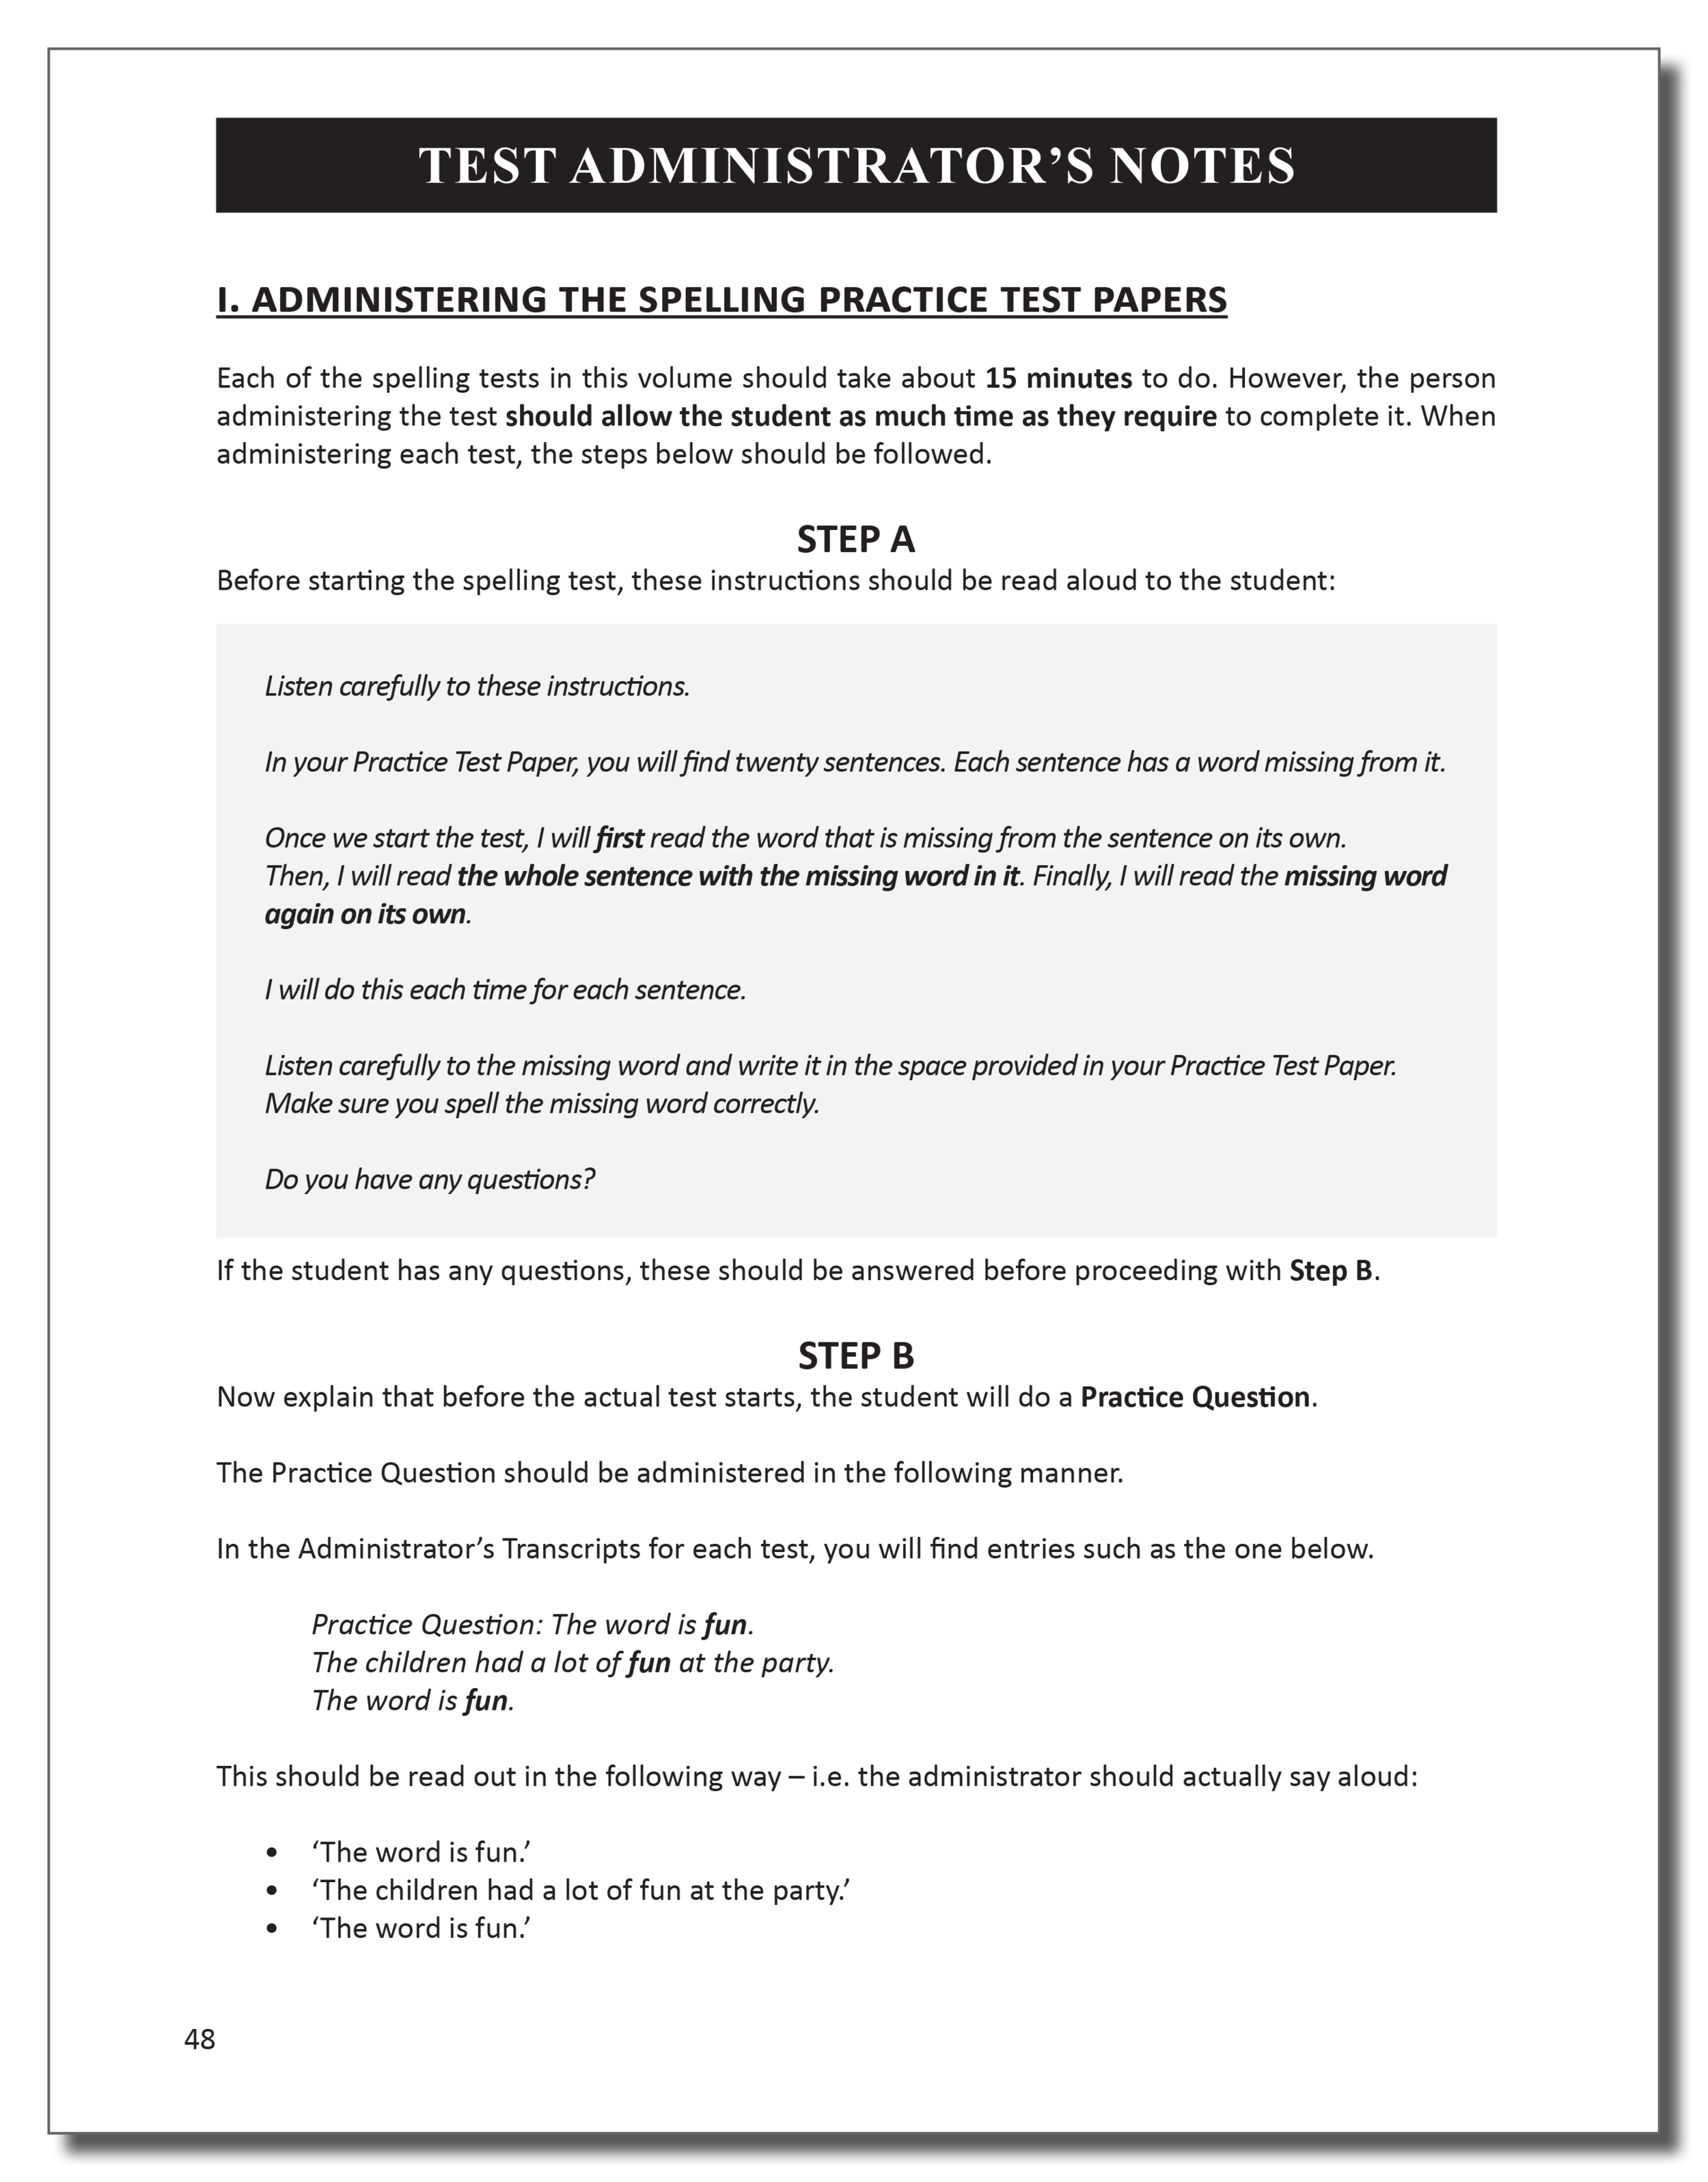 pagepreviewks1spellingtests2017p48.png